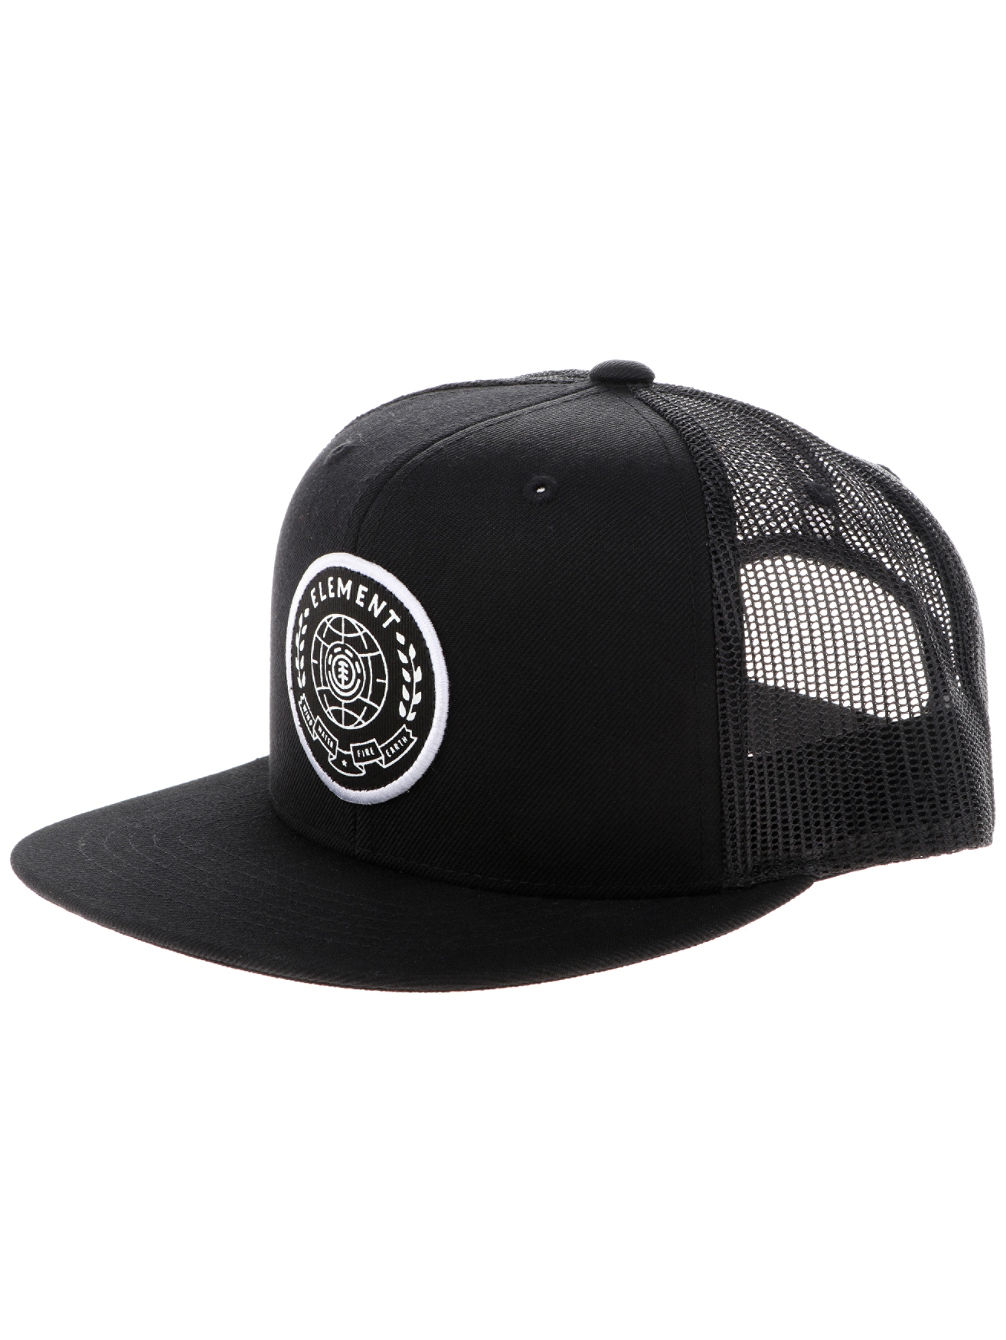 element-worldwide-cap